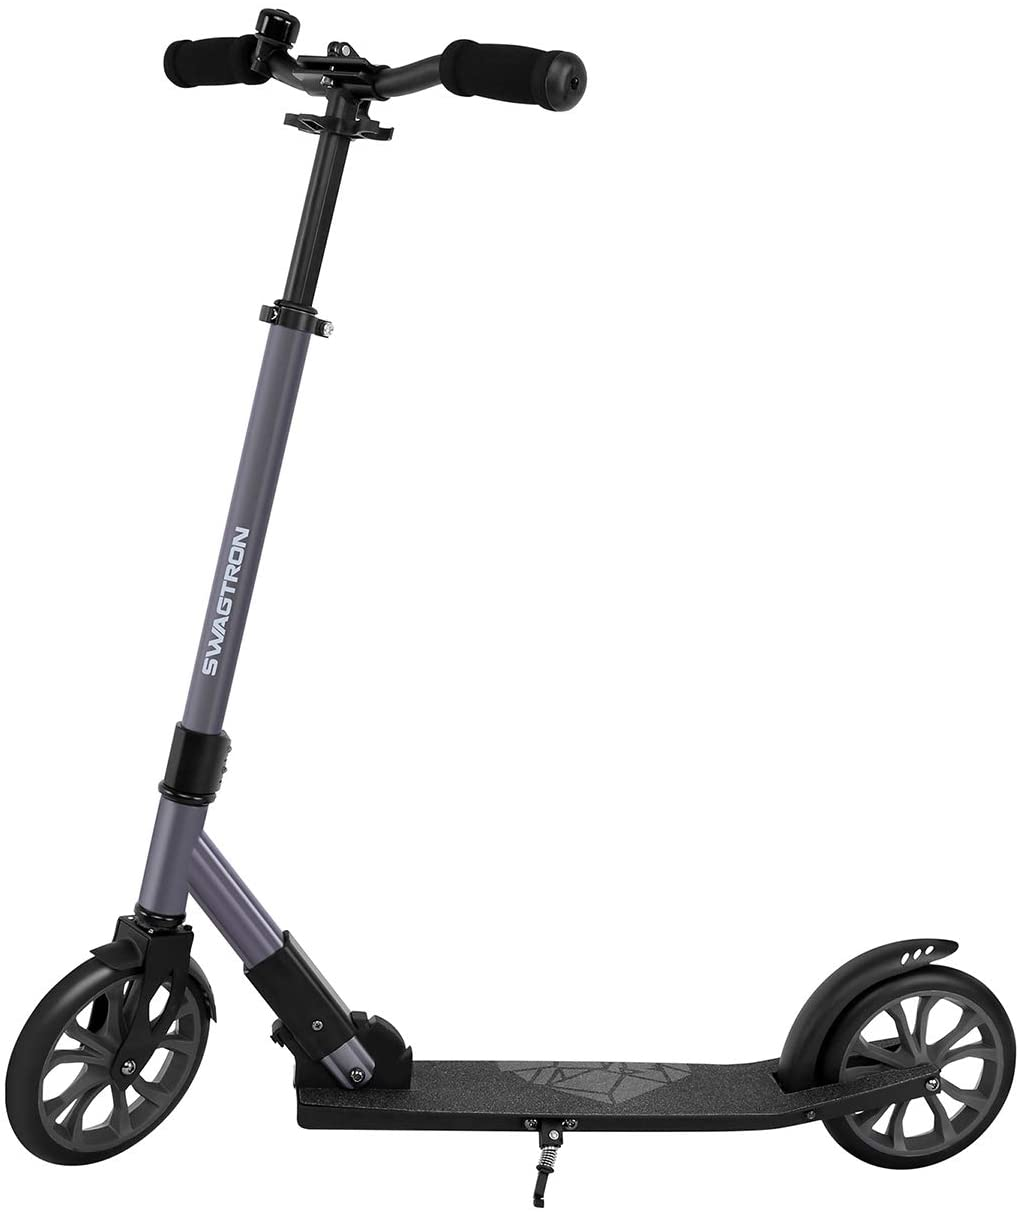 Swagtron K8 Folding Kick Scooter for Kids Quality inspection Kickstand Teens with Luxury